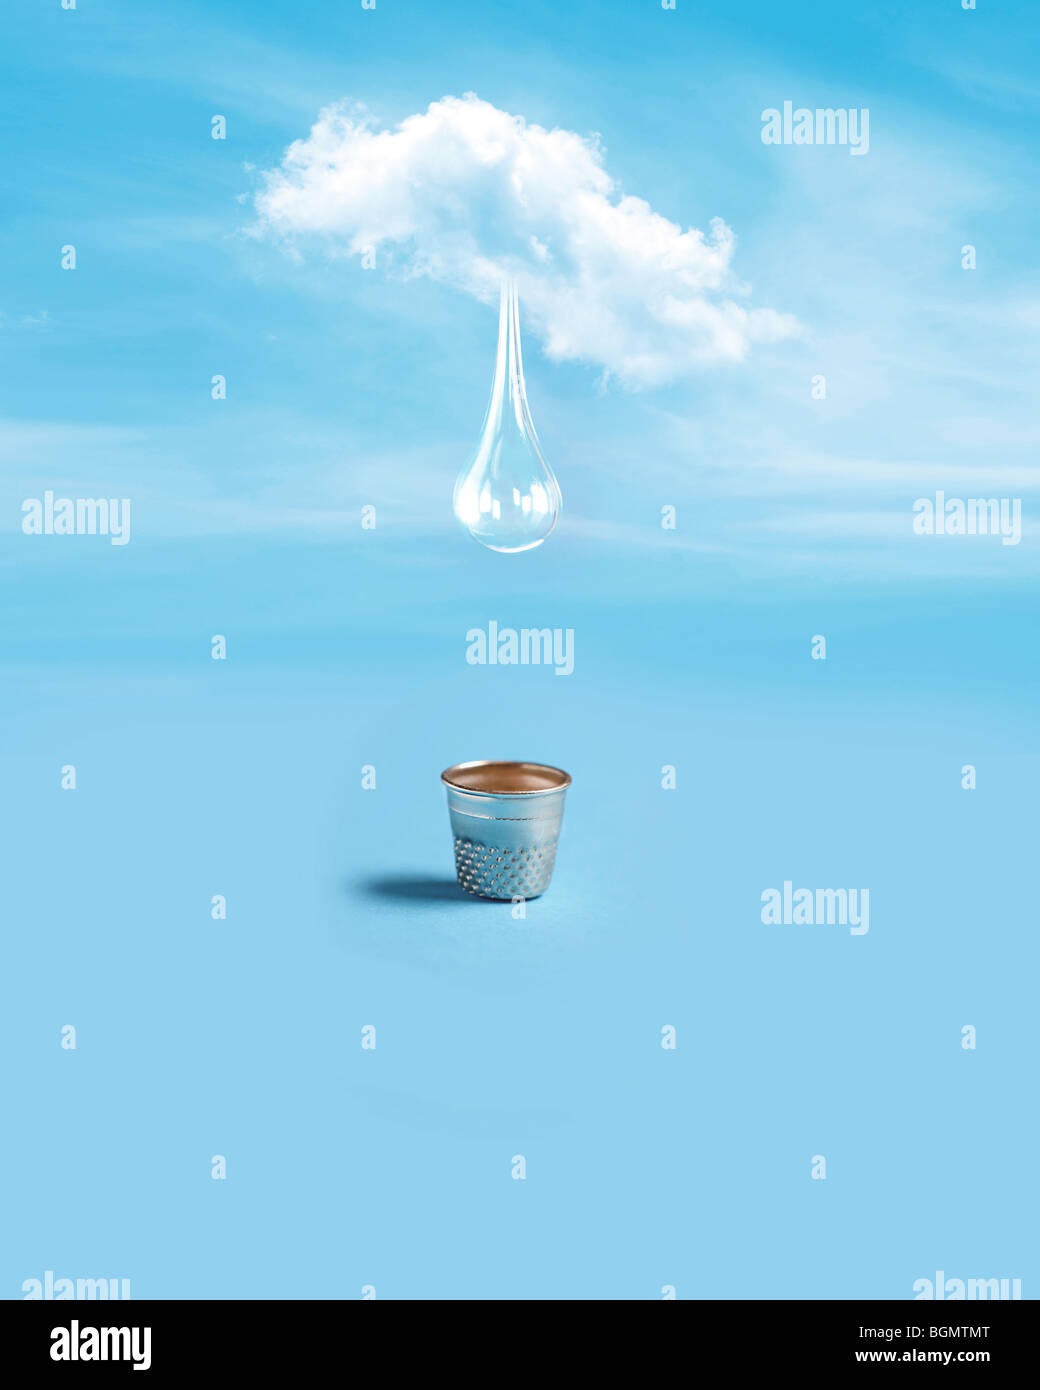 single drop of water falls from a lone cloud into a small silver thimble - Stock Image